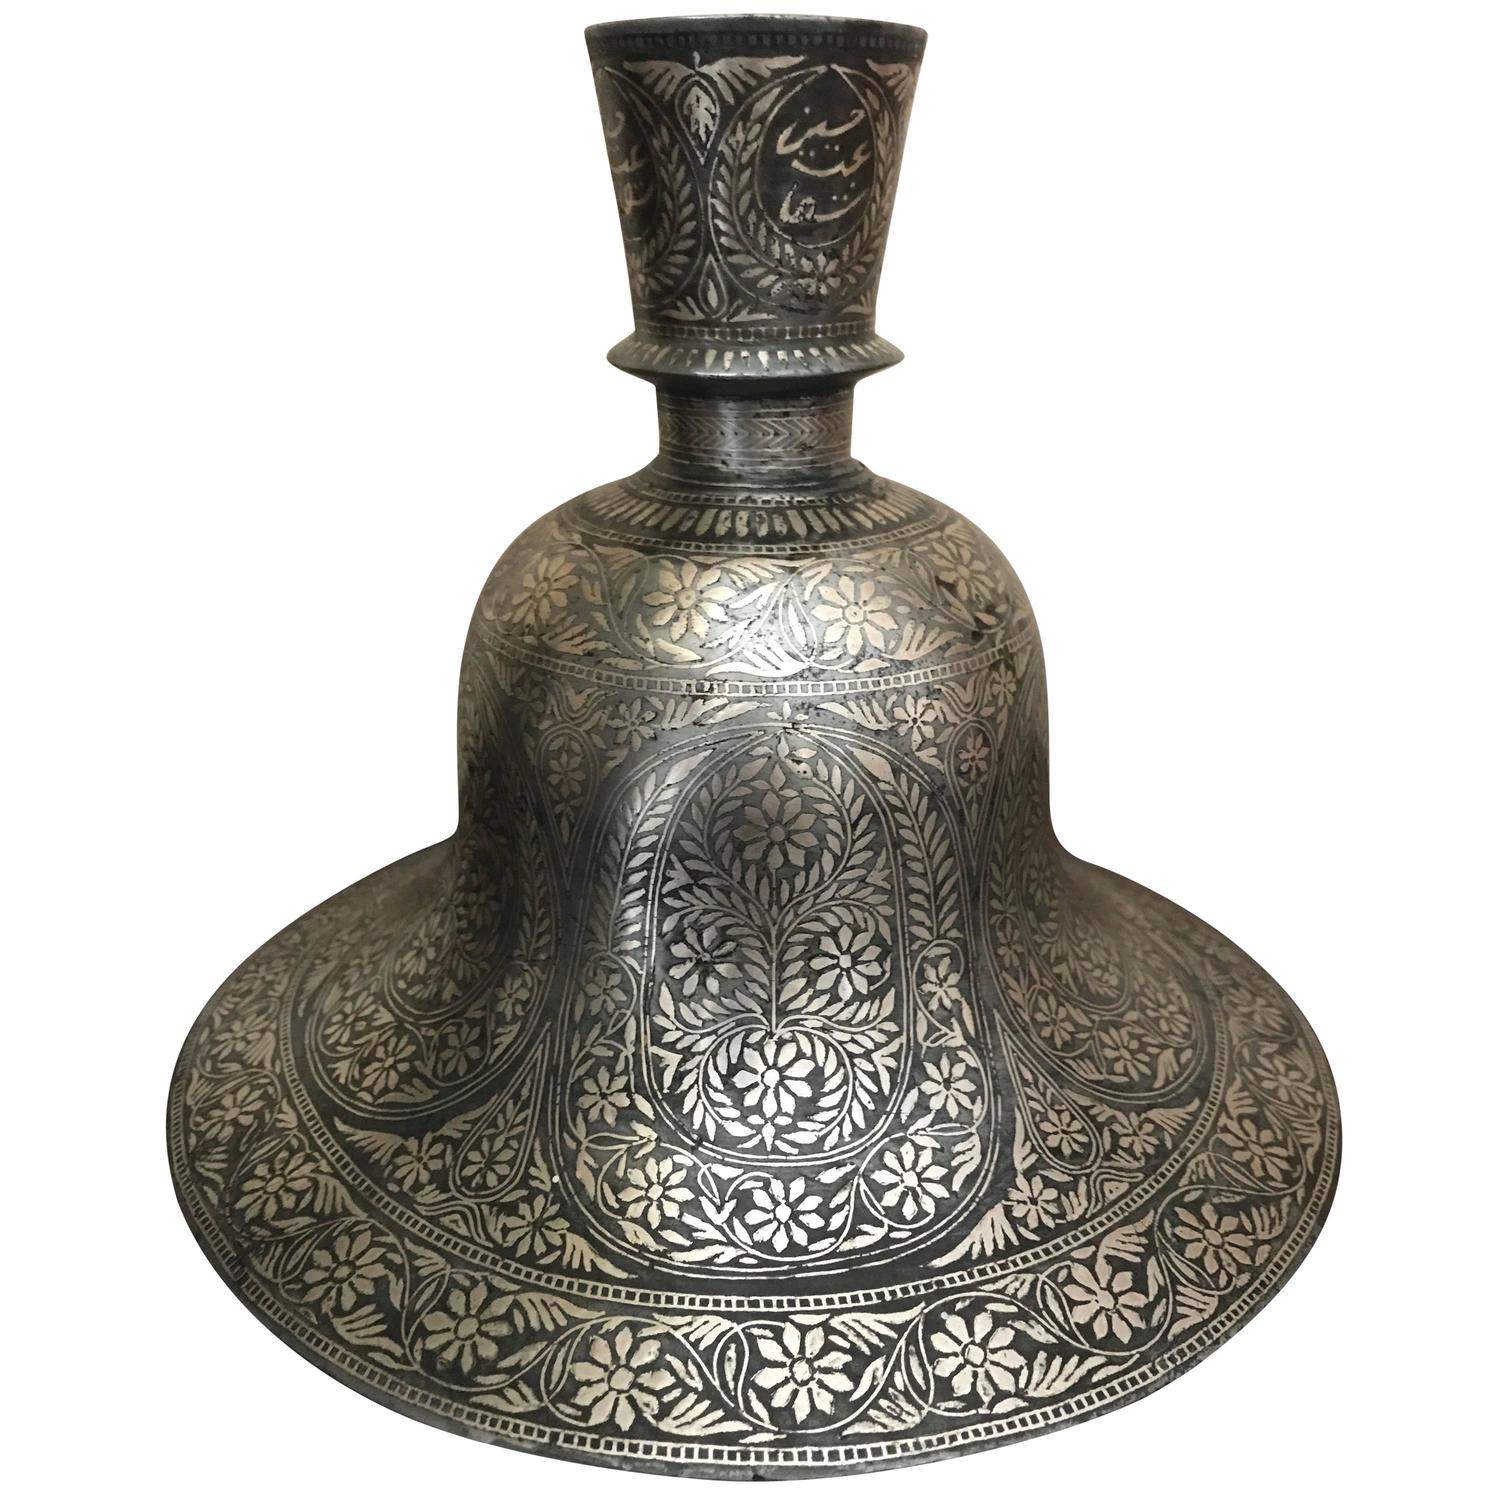 Indian table lamps 15 for sale at 1stdibs indian mughal silver inlaid bidri hookah base geotapseo Gallery